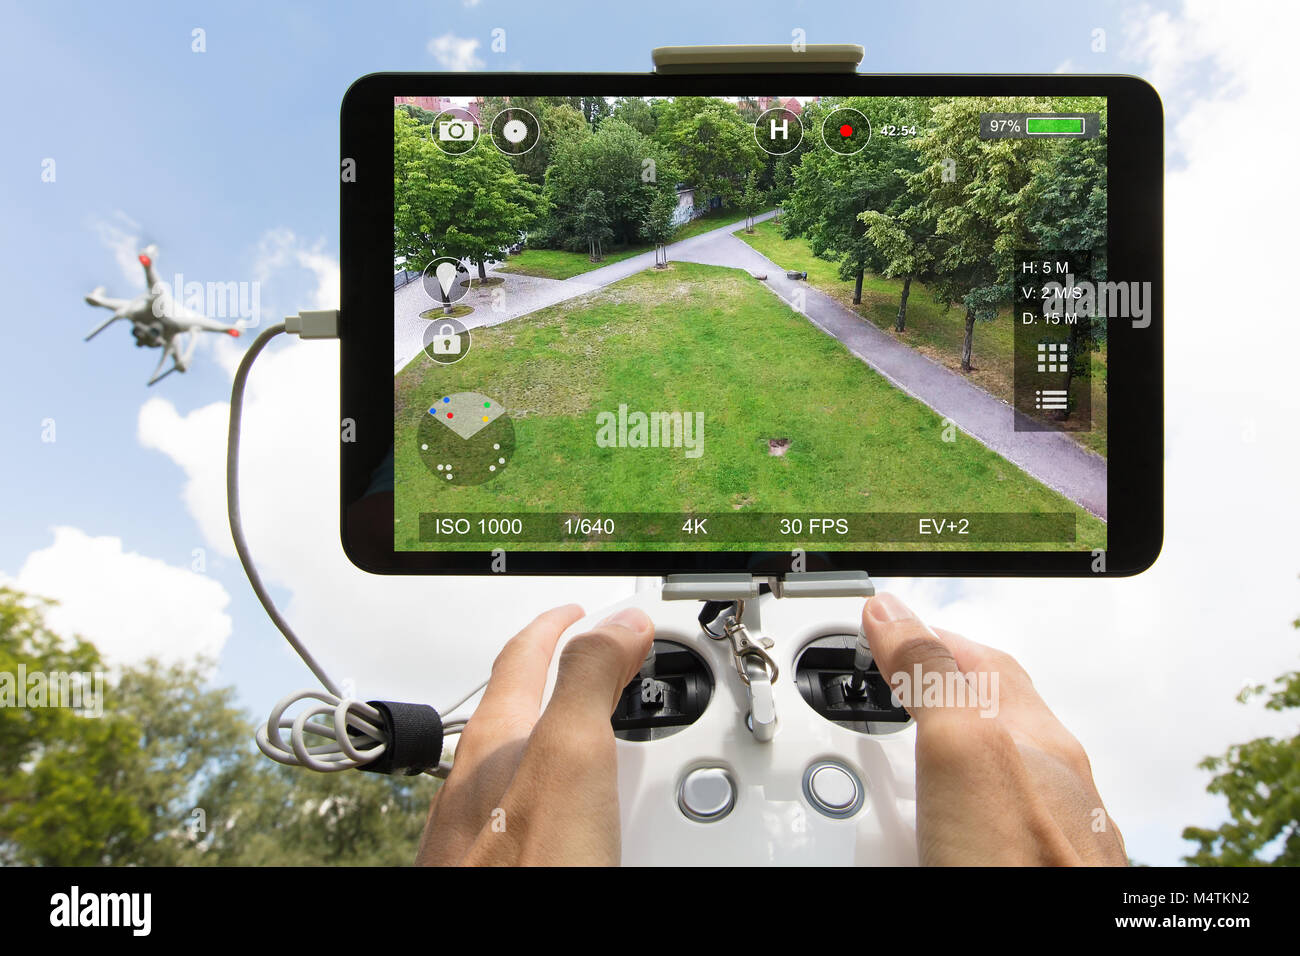 Cropped image of hands controlling drone filming park seen on digital tablet - Stock Image